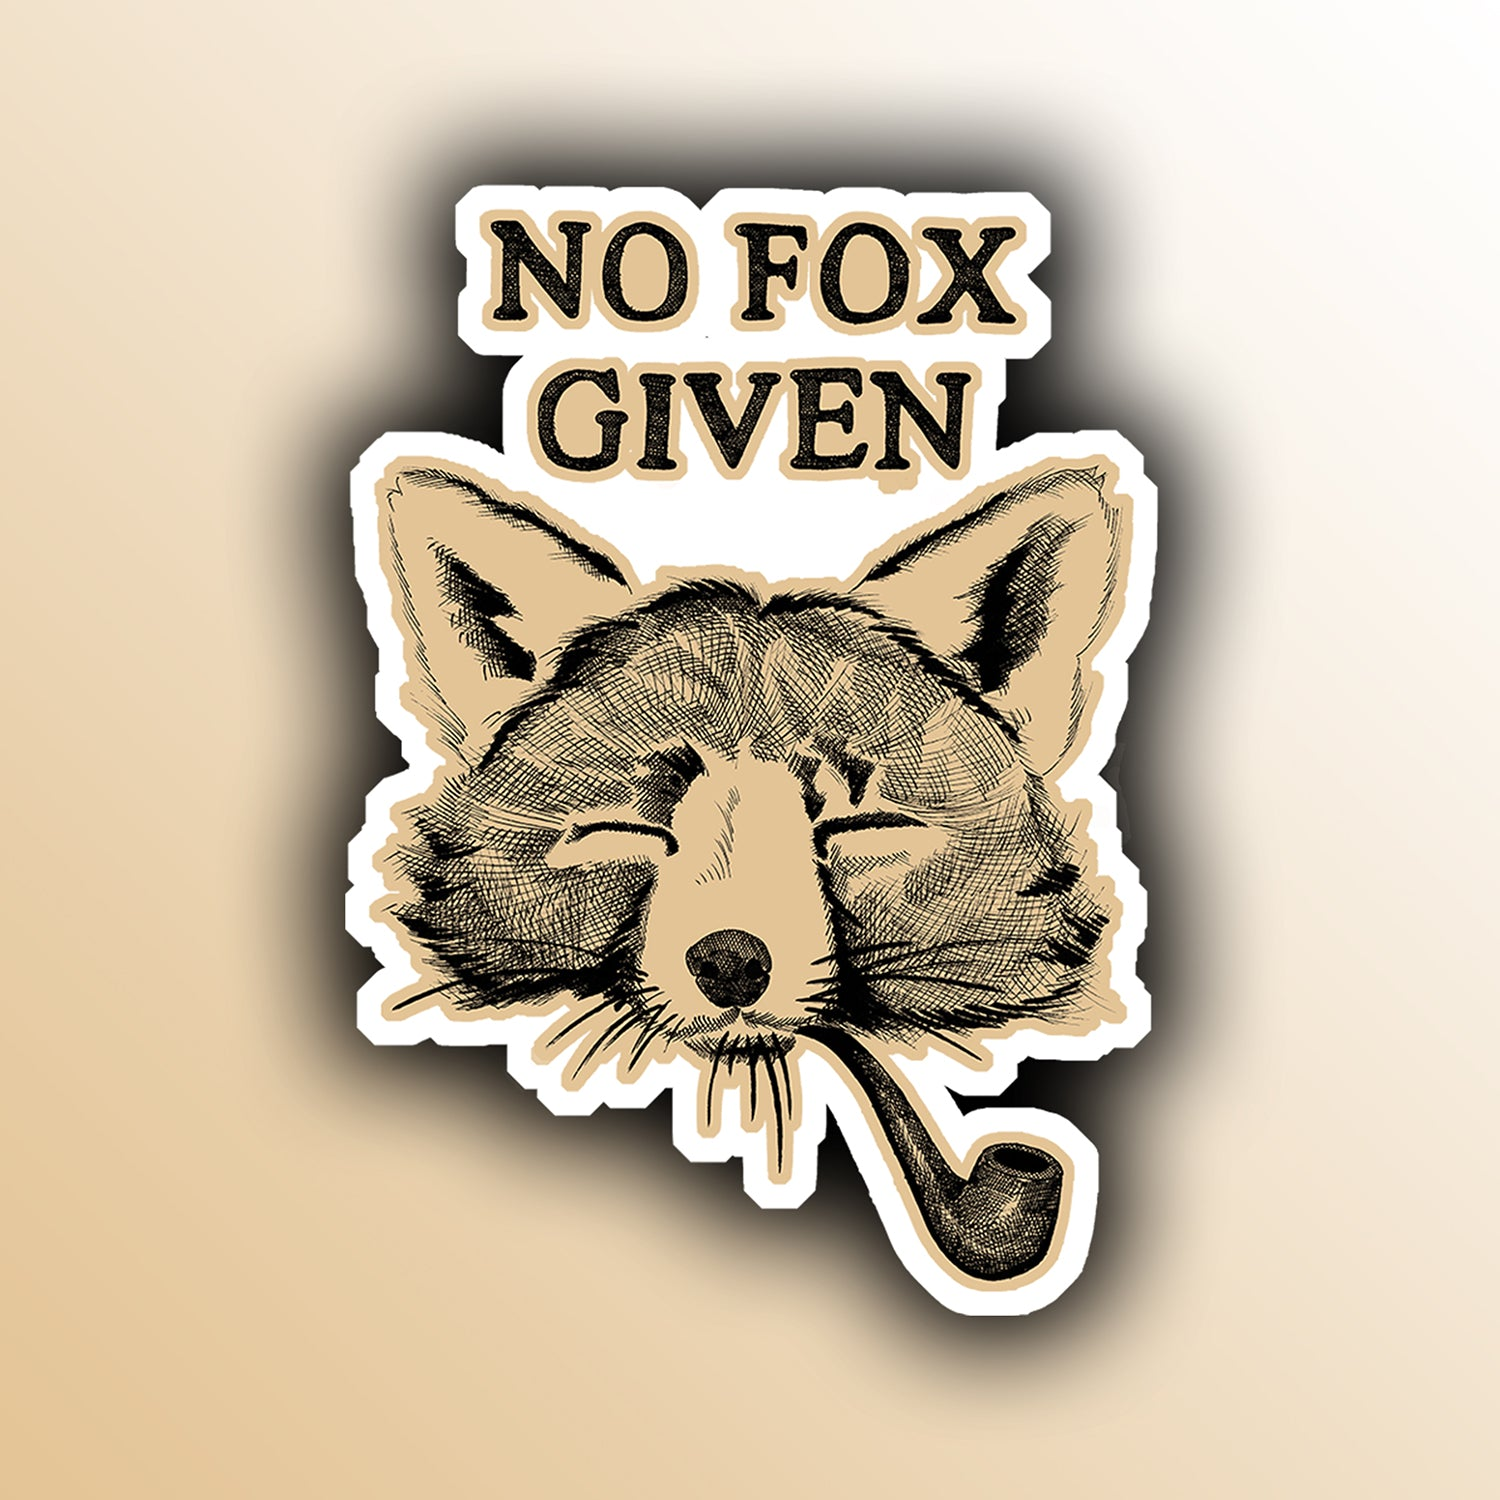 funny sticker with a fox smoking a pipe animal pun